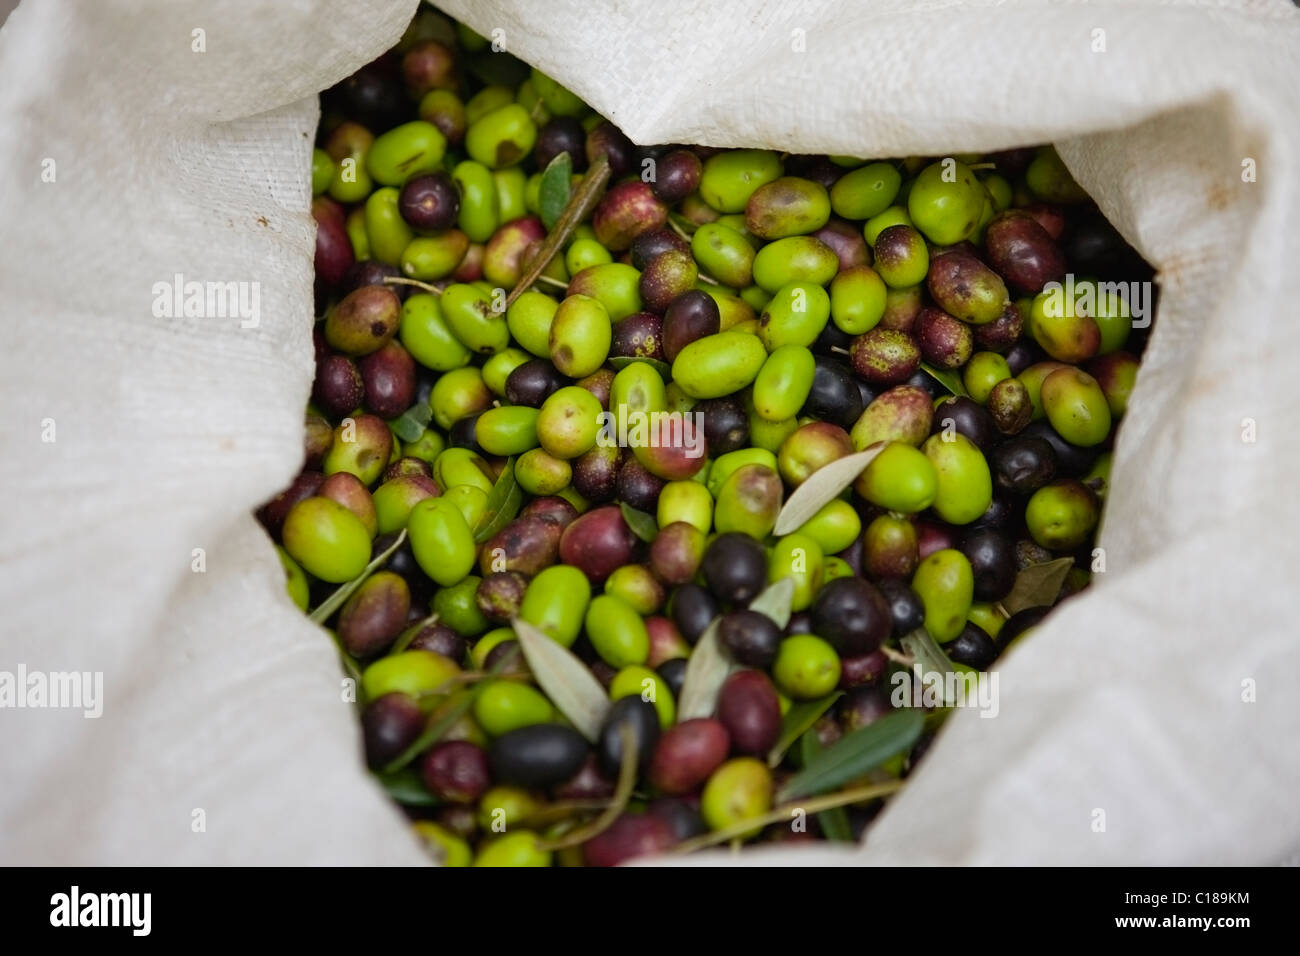 Bag filled with fresh olives - Stock Image